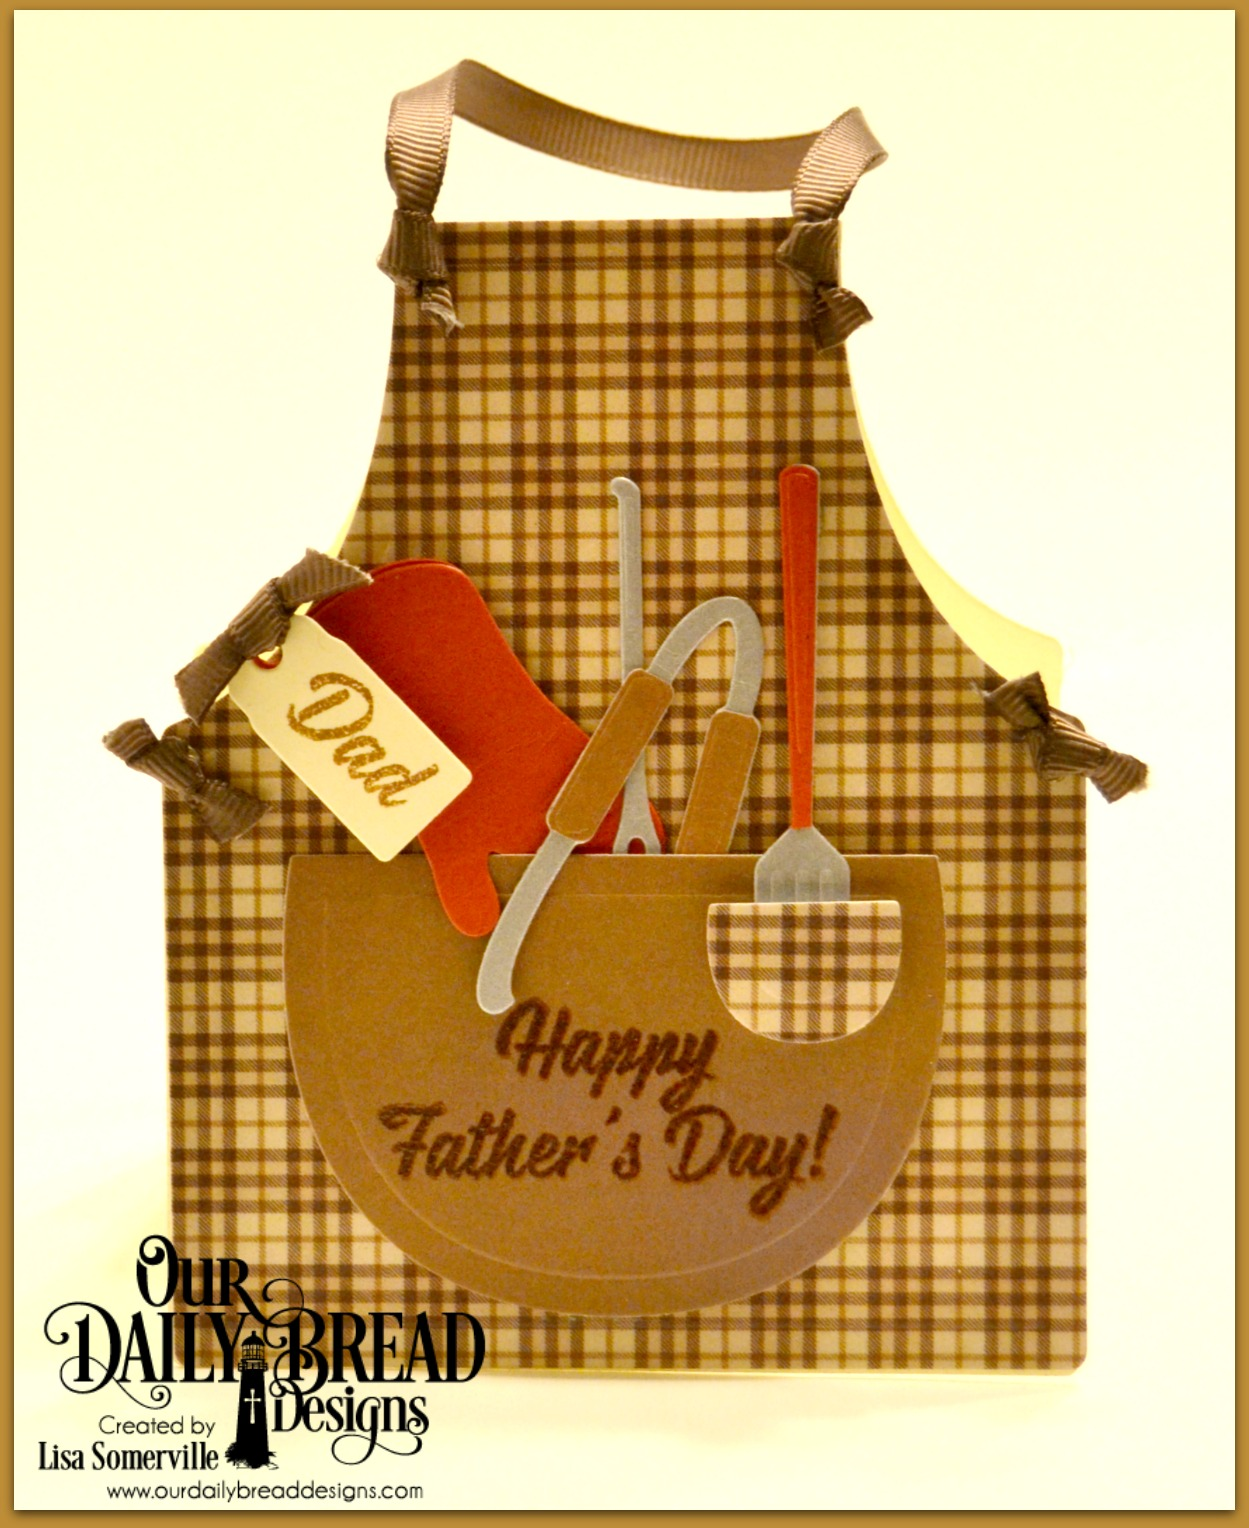 Lisa S Tool Time Father S Day Card: Designs By Lisa Somerville: Father's Day BBQ Apron